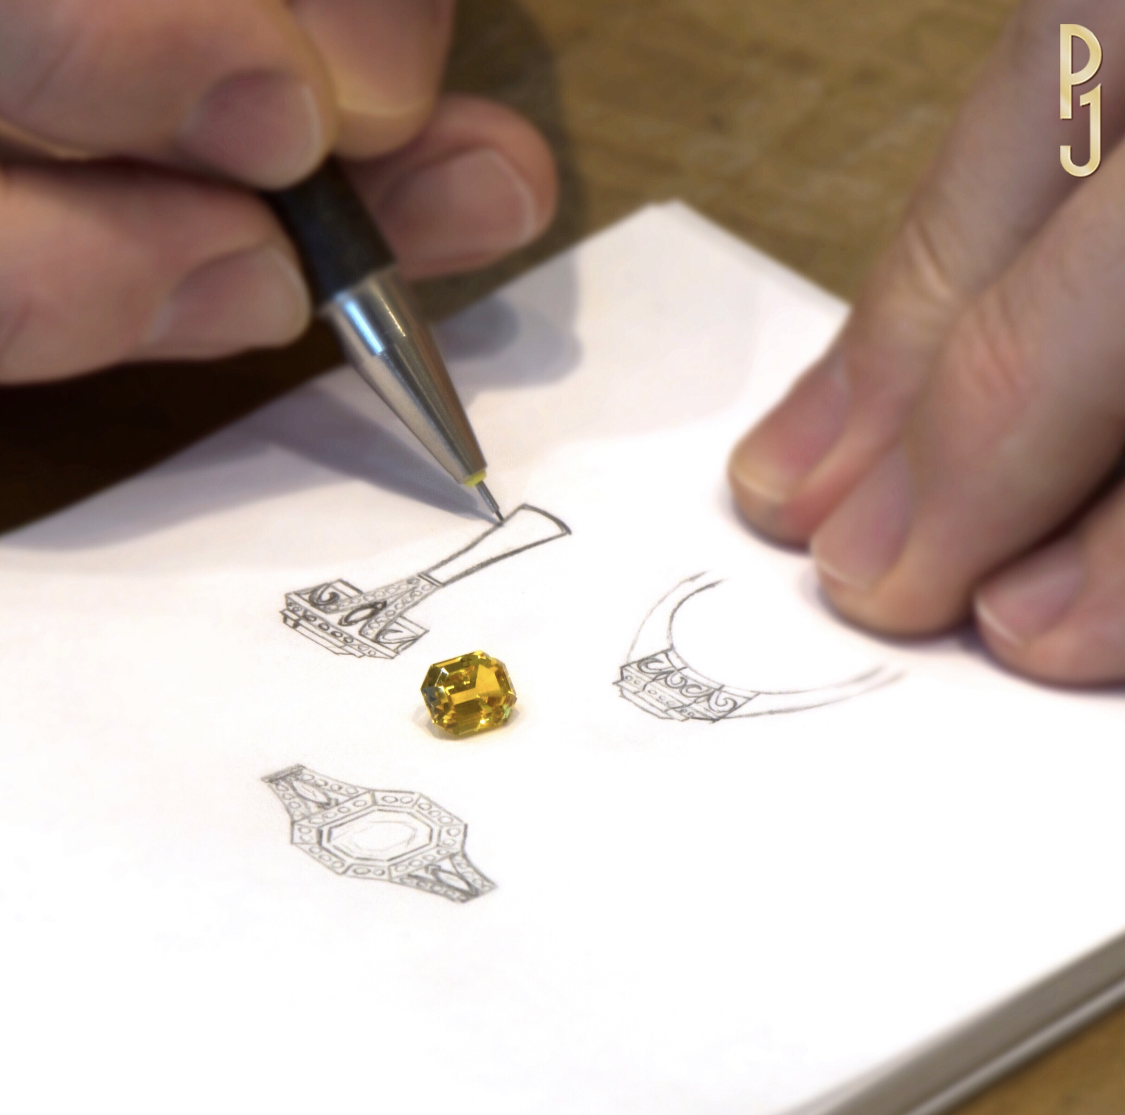 Custom-made Jewellery & Design - Philip is a master of handcrafting bespoke jewellery creations; engagement rings, dress rings, pendants and earrings are his specialty.Share with Philip you jewellery desires. The design process begins with a sketch and choosing the right stone for you.Perhaps you already have a stone that you would like made into a special piece.